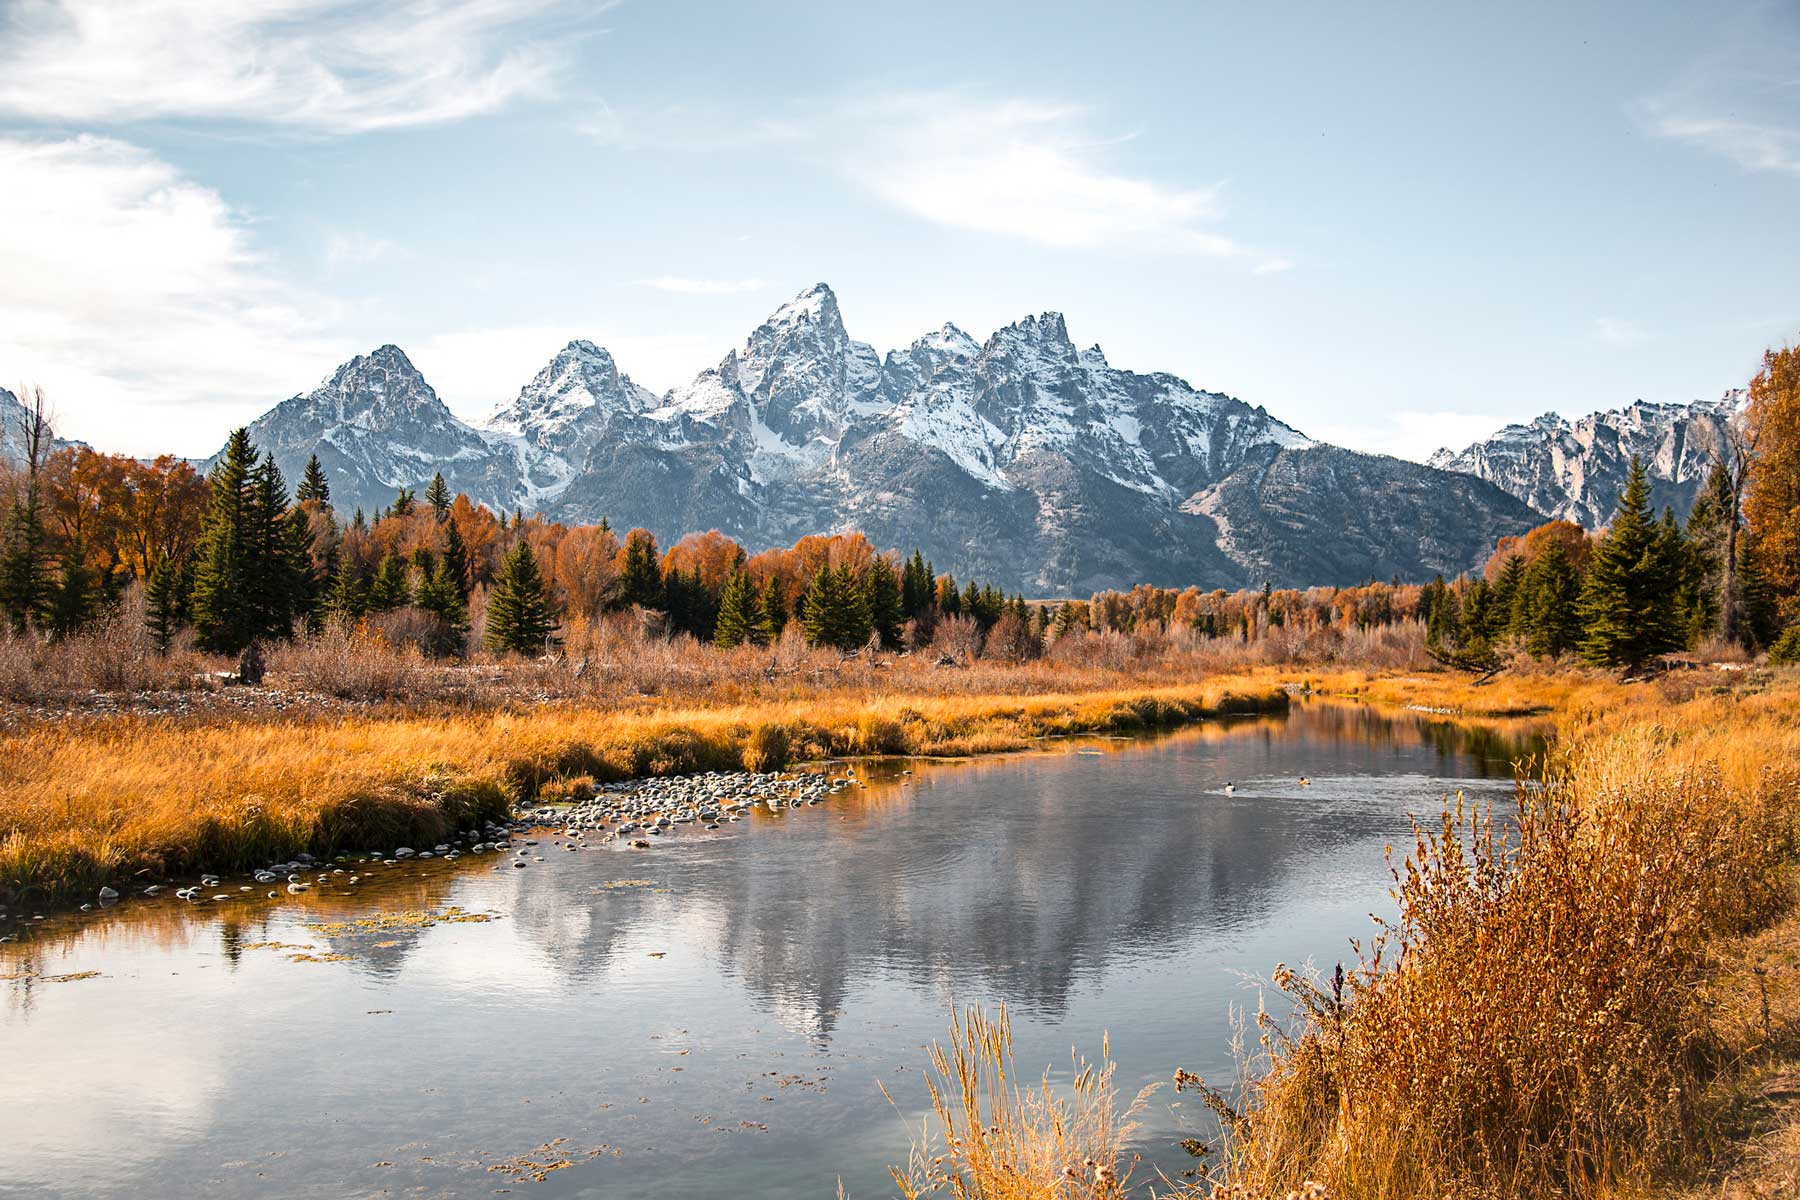 Teton mountain range reflection in the Snake River at Schwabacher's Landing in Grand Teton National Park, Wyoming. Fall scenic nature landscape with evergreen trees and a mountain water reflection.